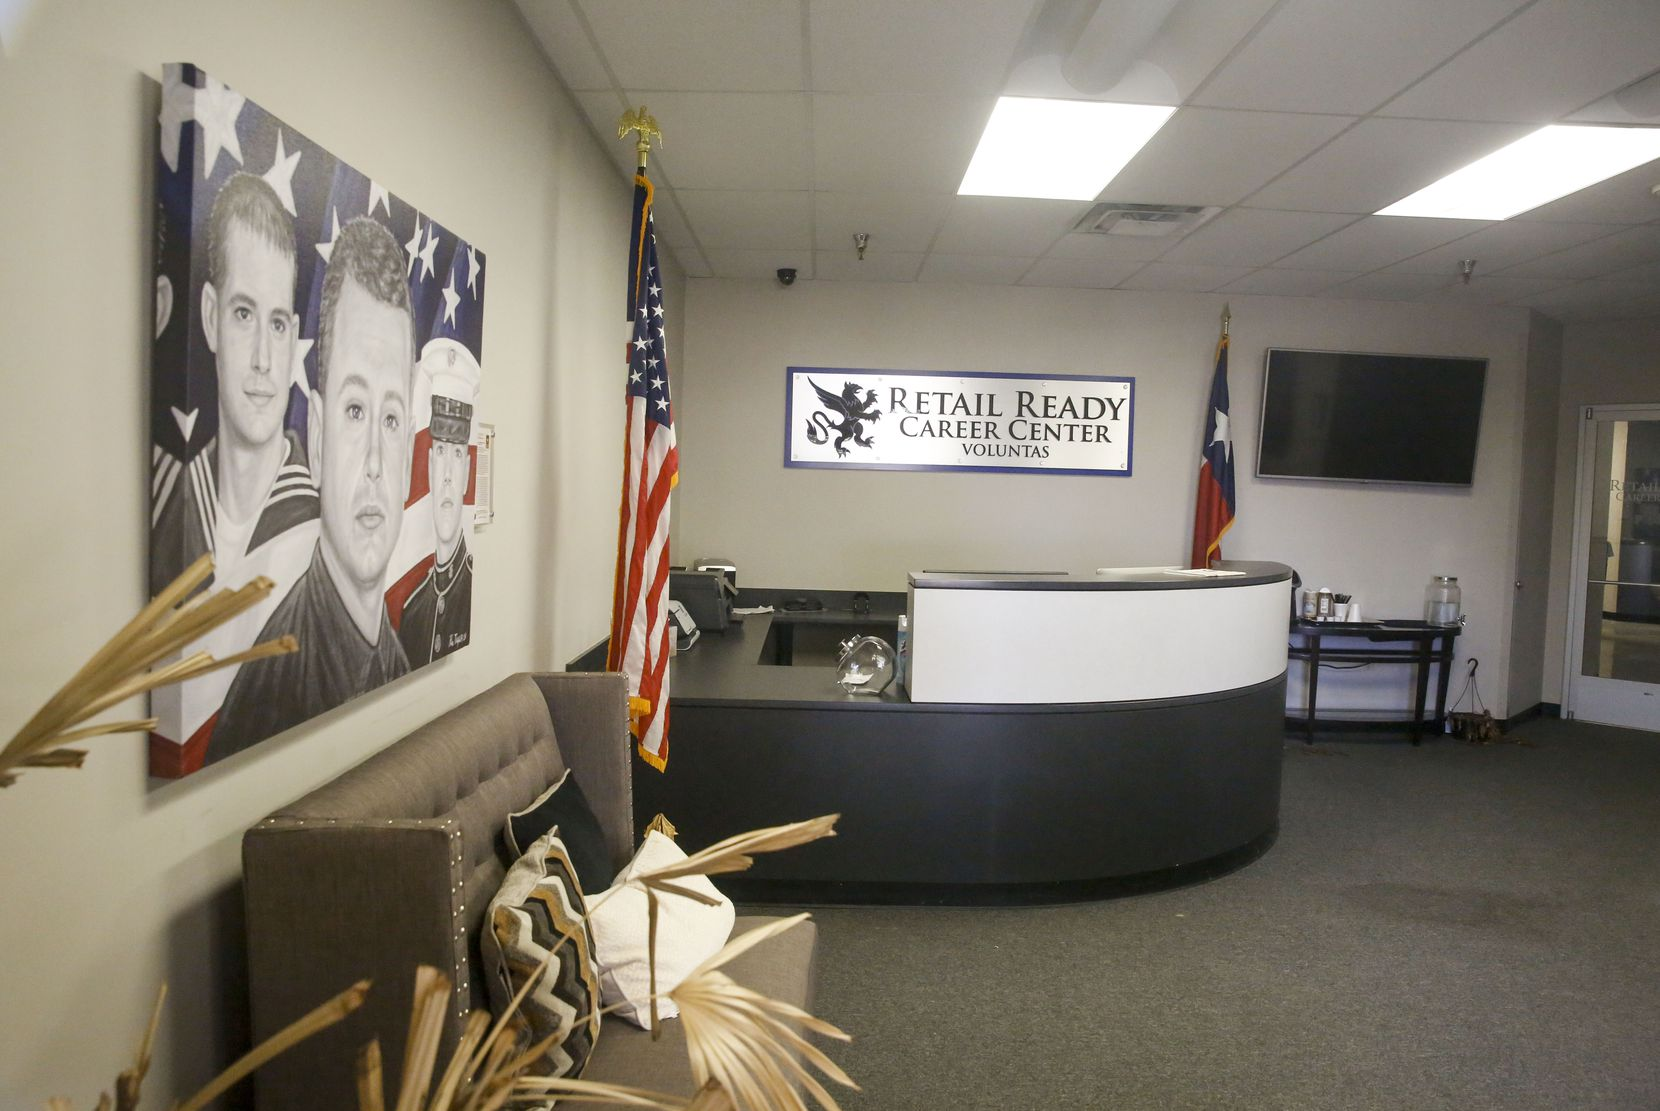 The lobby of the Retail Ready Career Center sits empty and frozen in time just as it was when it was closed over two years ago by the federal government in Garland, Texas Thursday September 26, 2019.